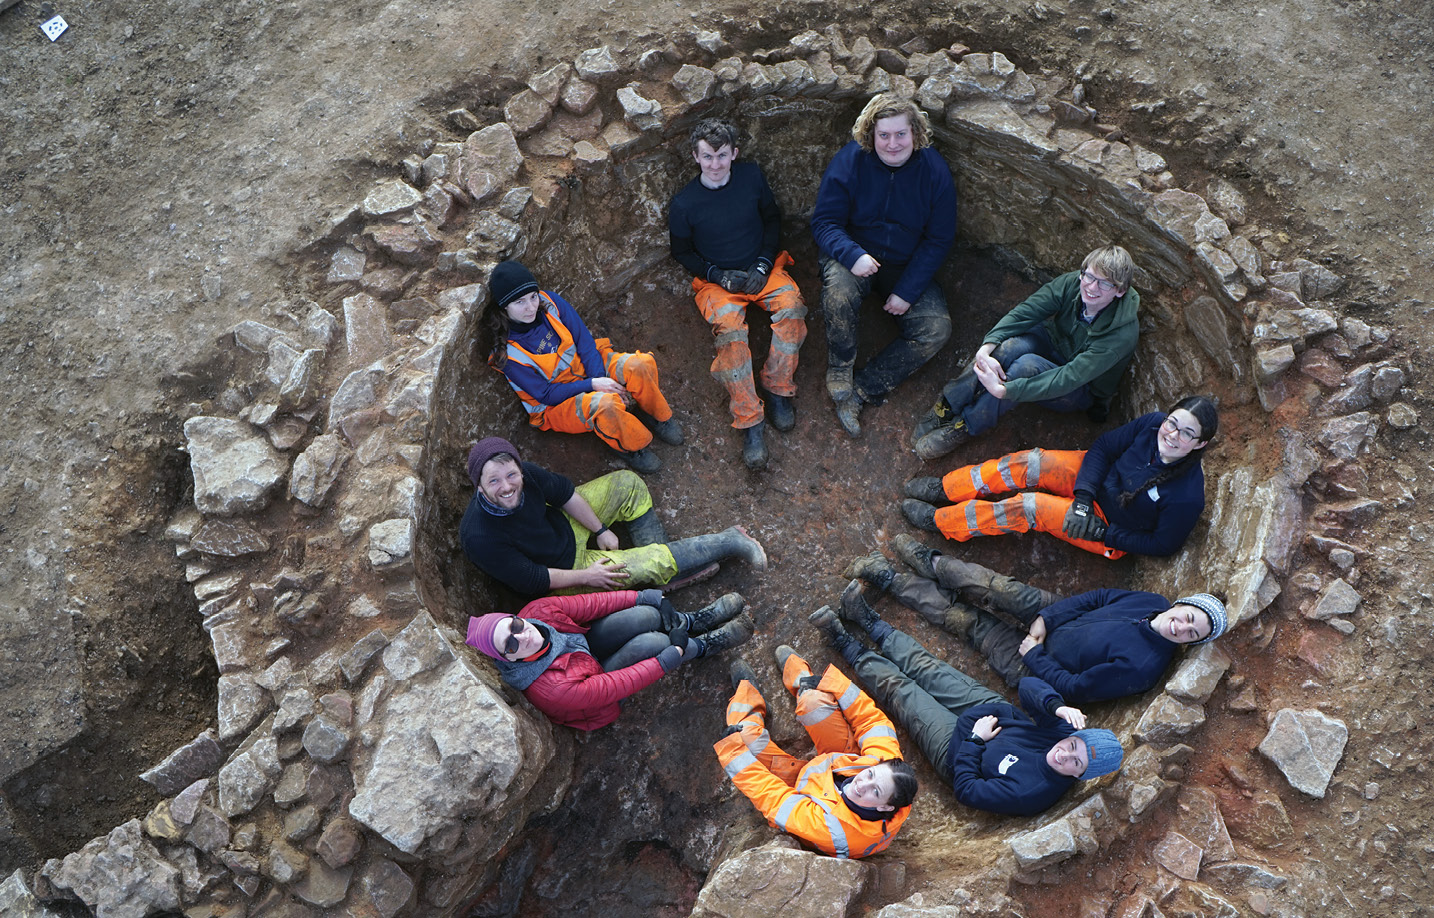 BELOW One of the site's star finds: a well-preserved lime kiln that was so large it could comfortably accommodate the whole excavation team.